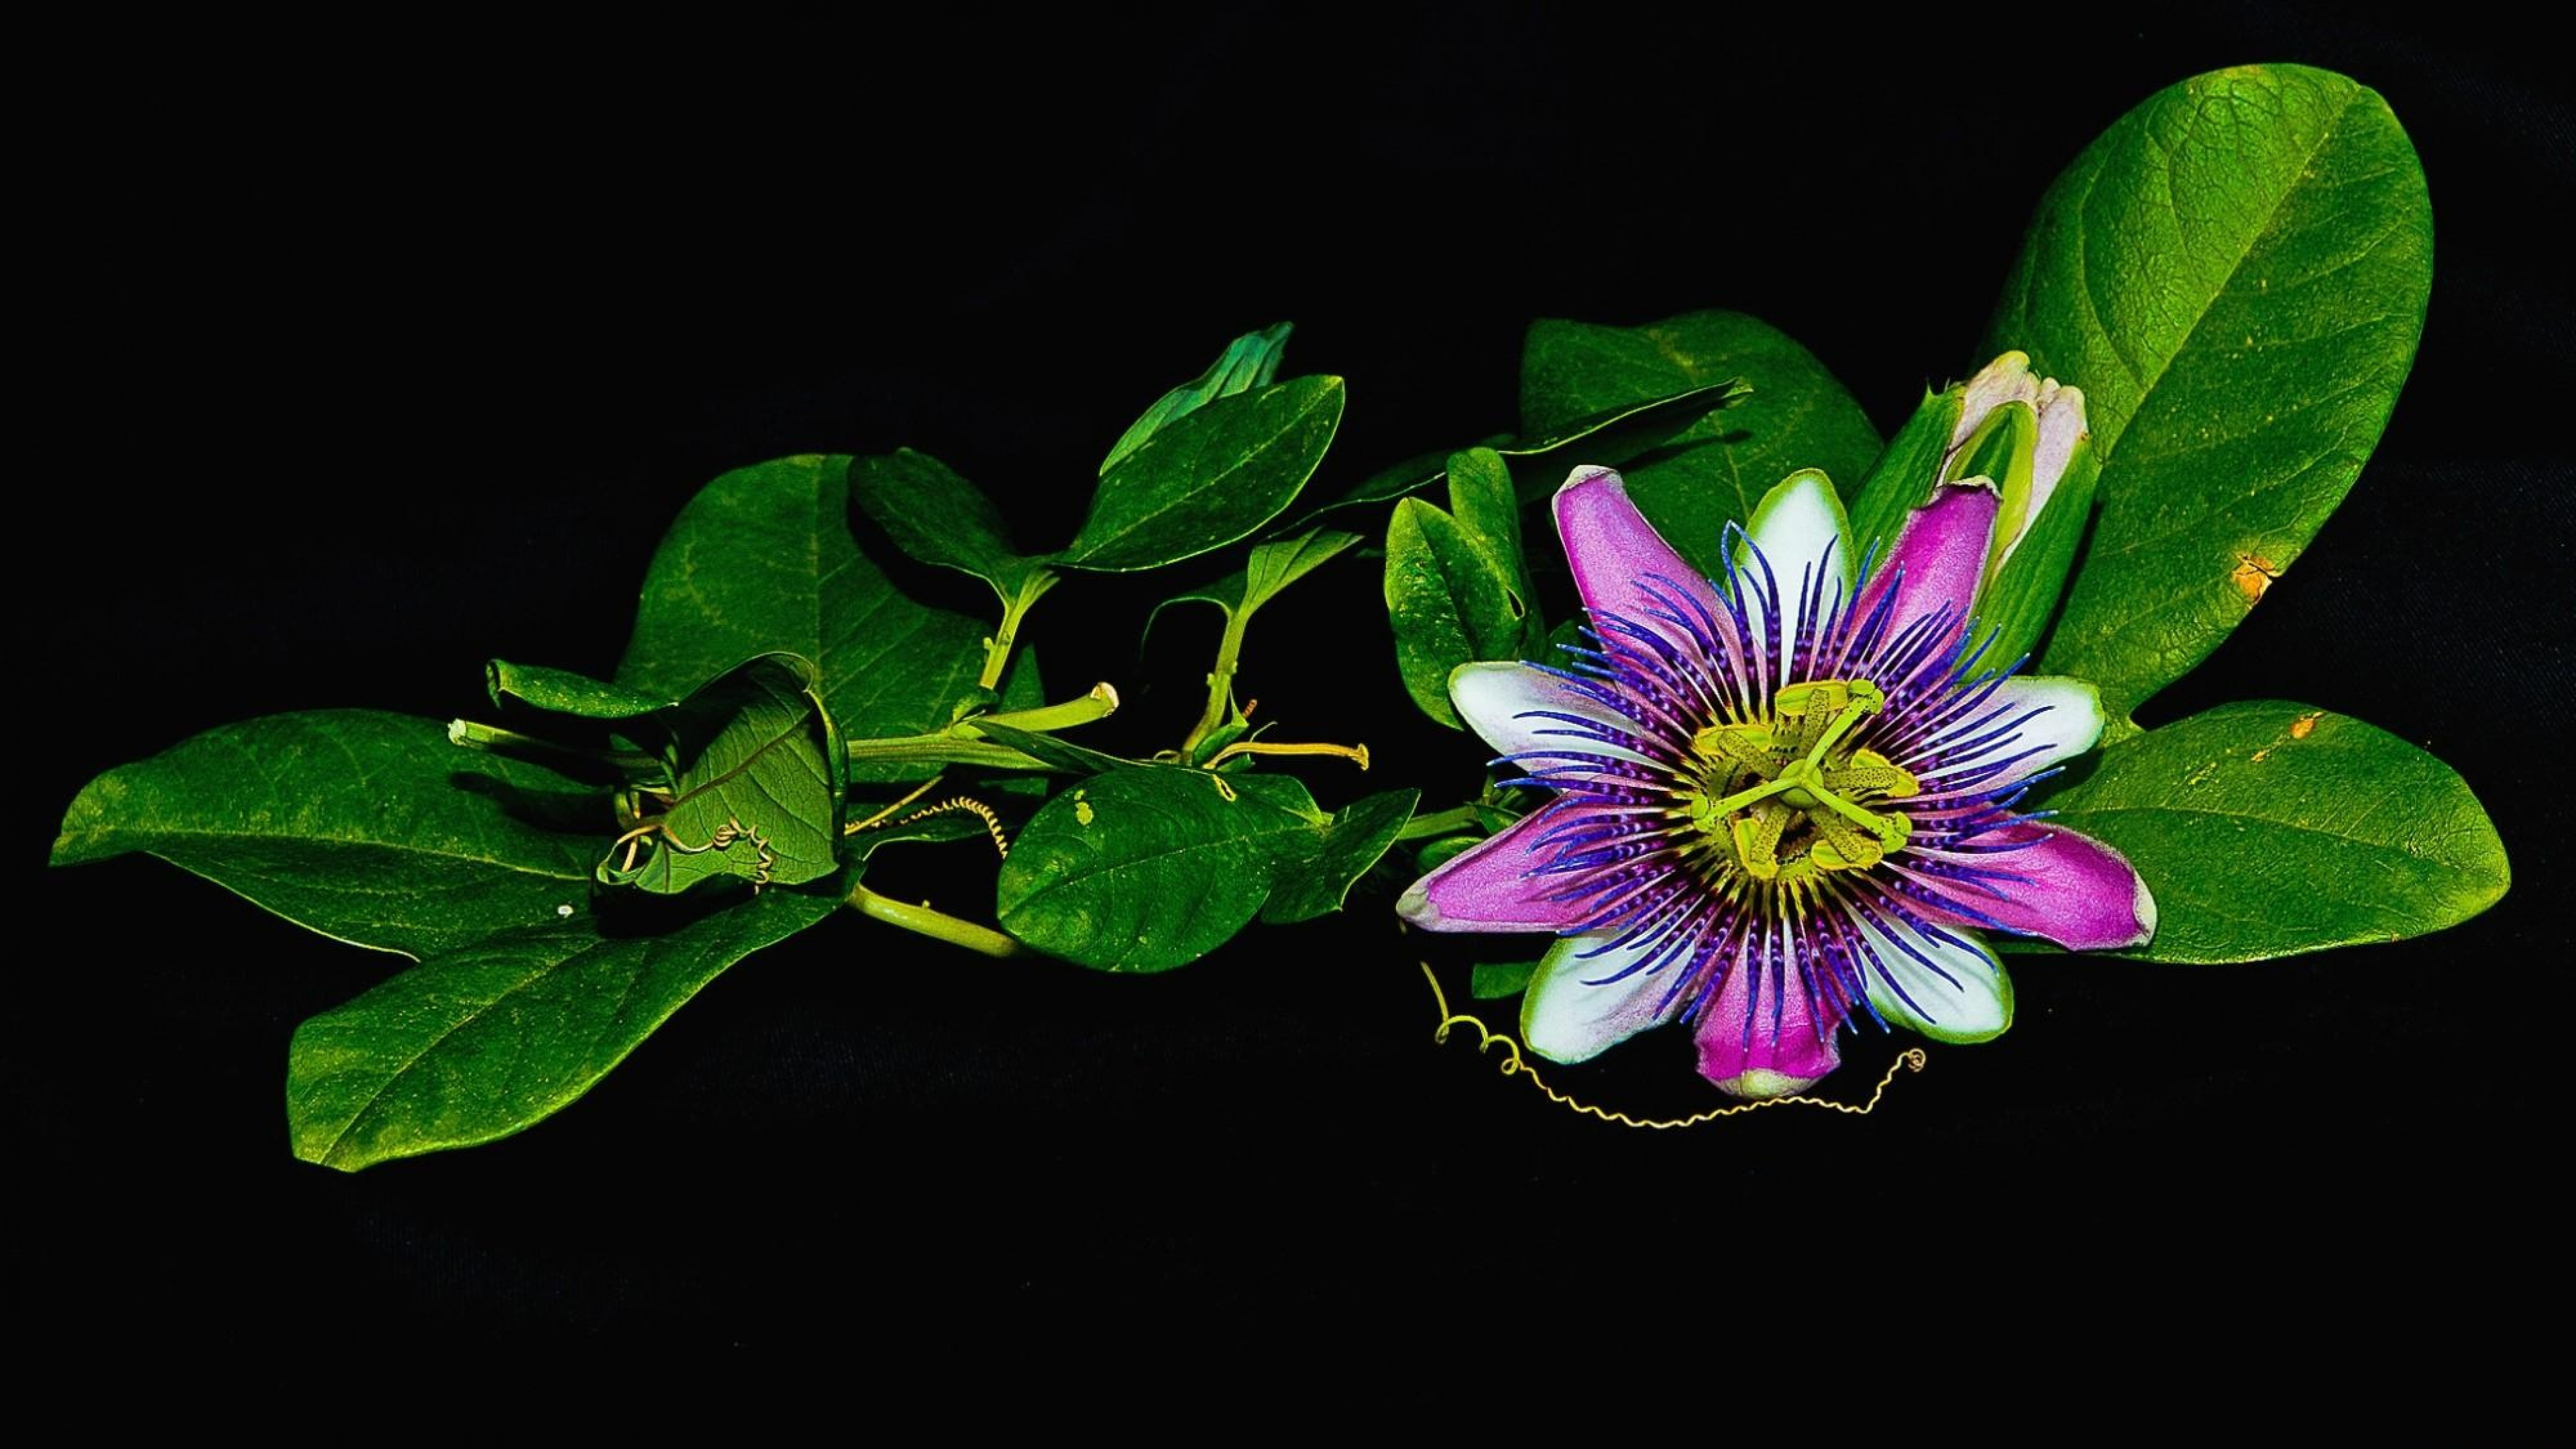 Hd Flower Backgrounds: Passion Flower HD Wallpapers